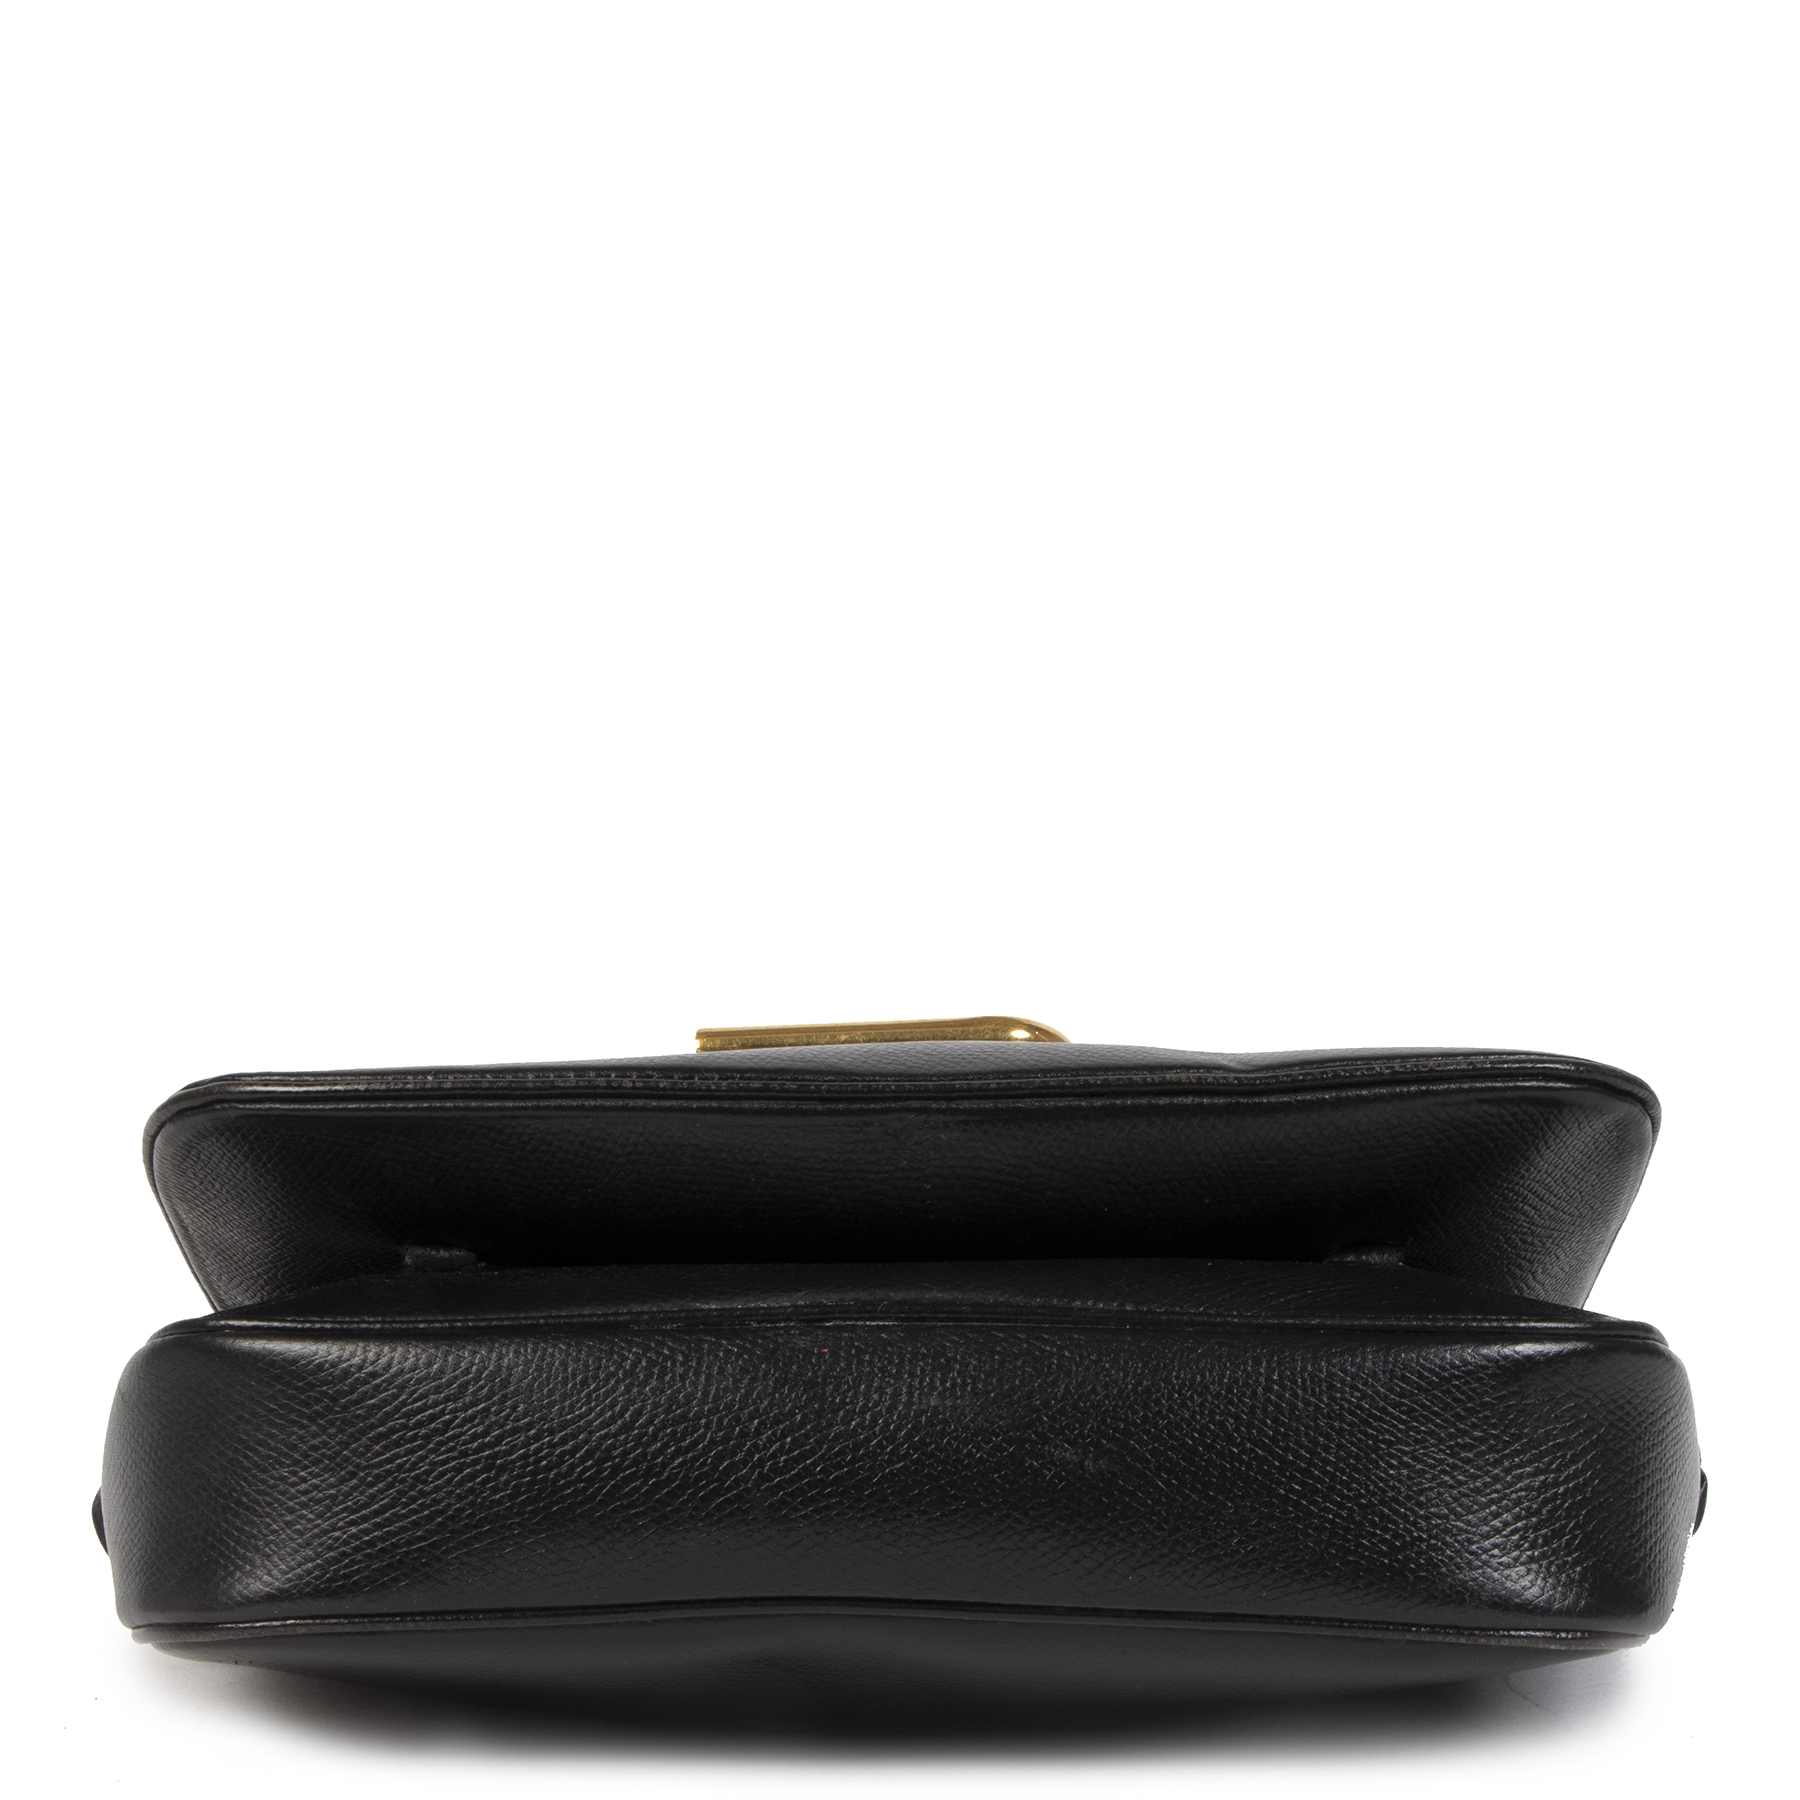 Are you looking for an authentic Delvaux Black D Shoulder Bag?